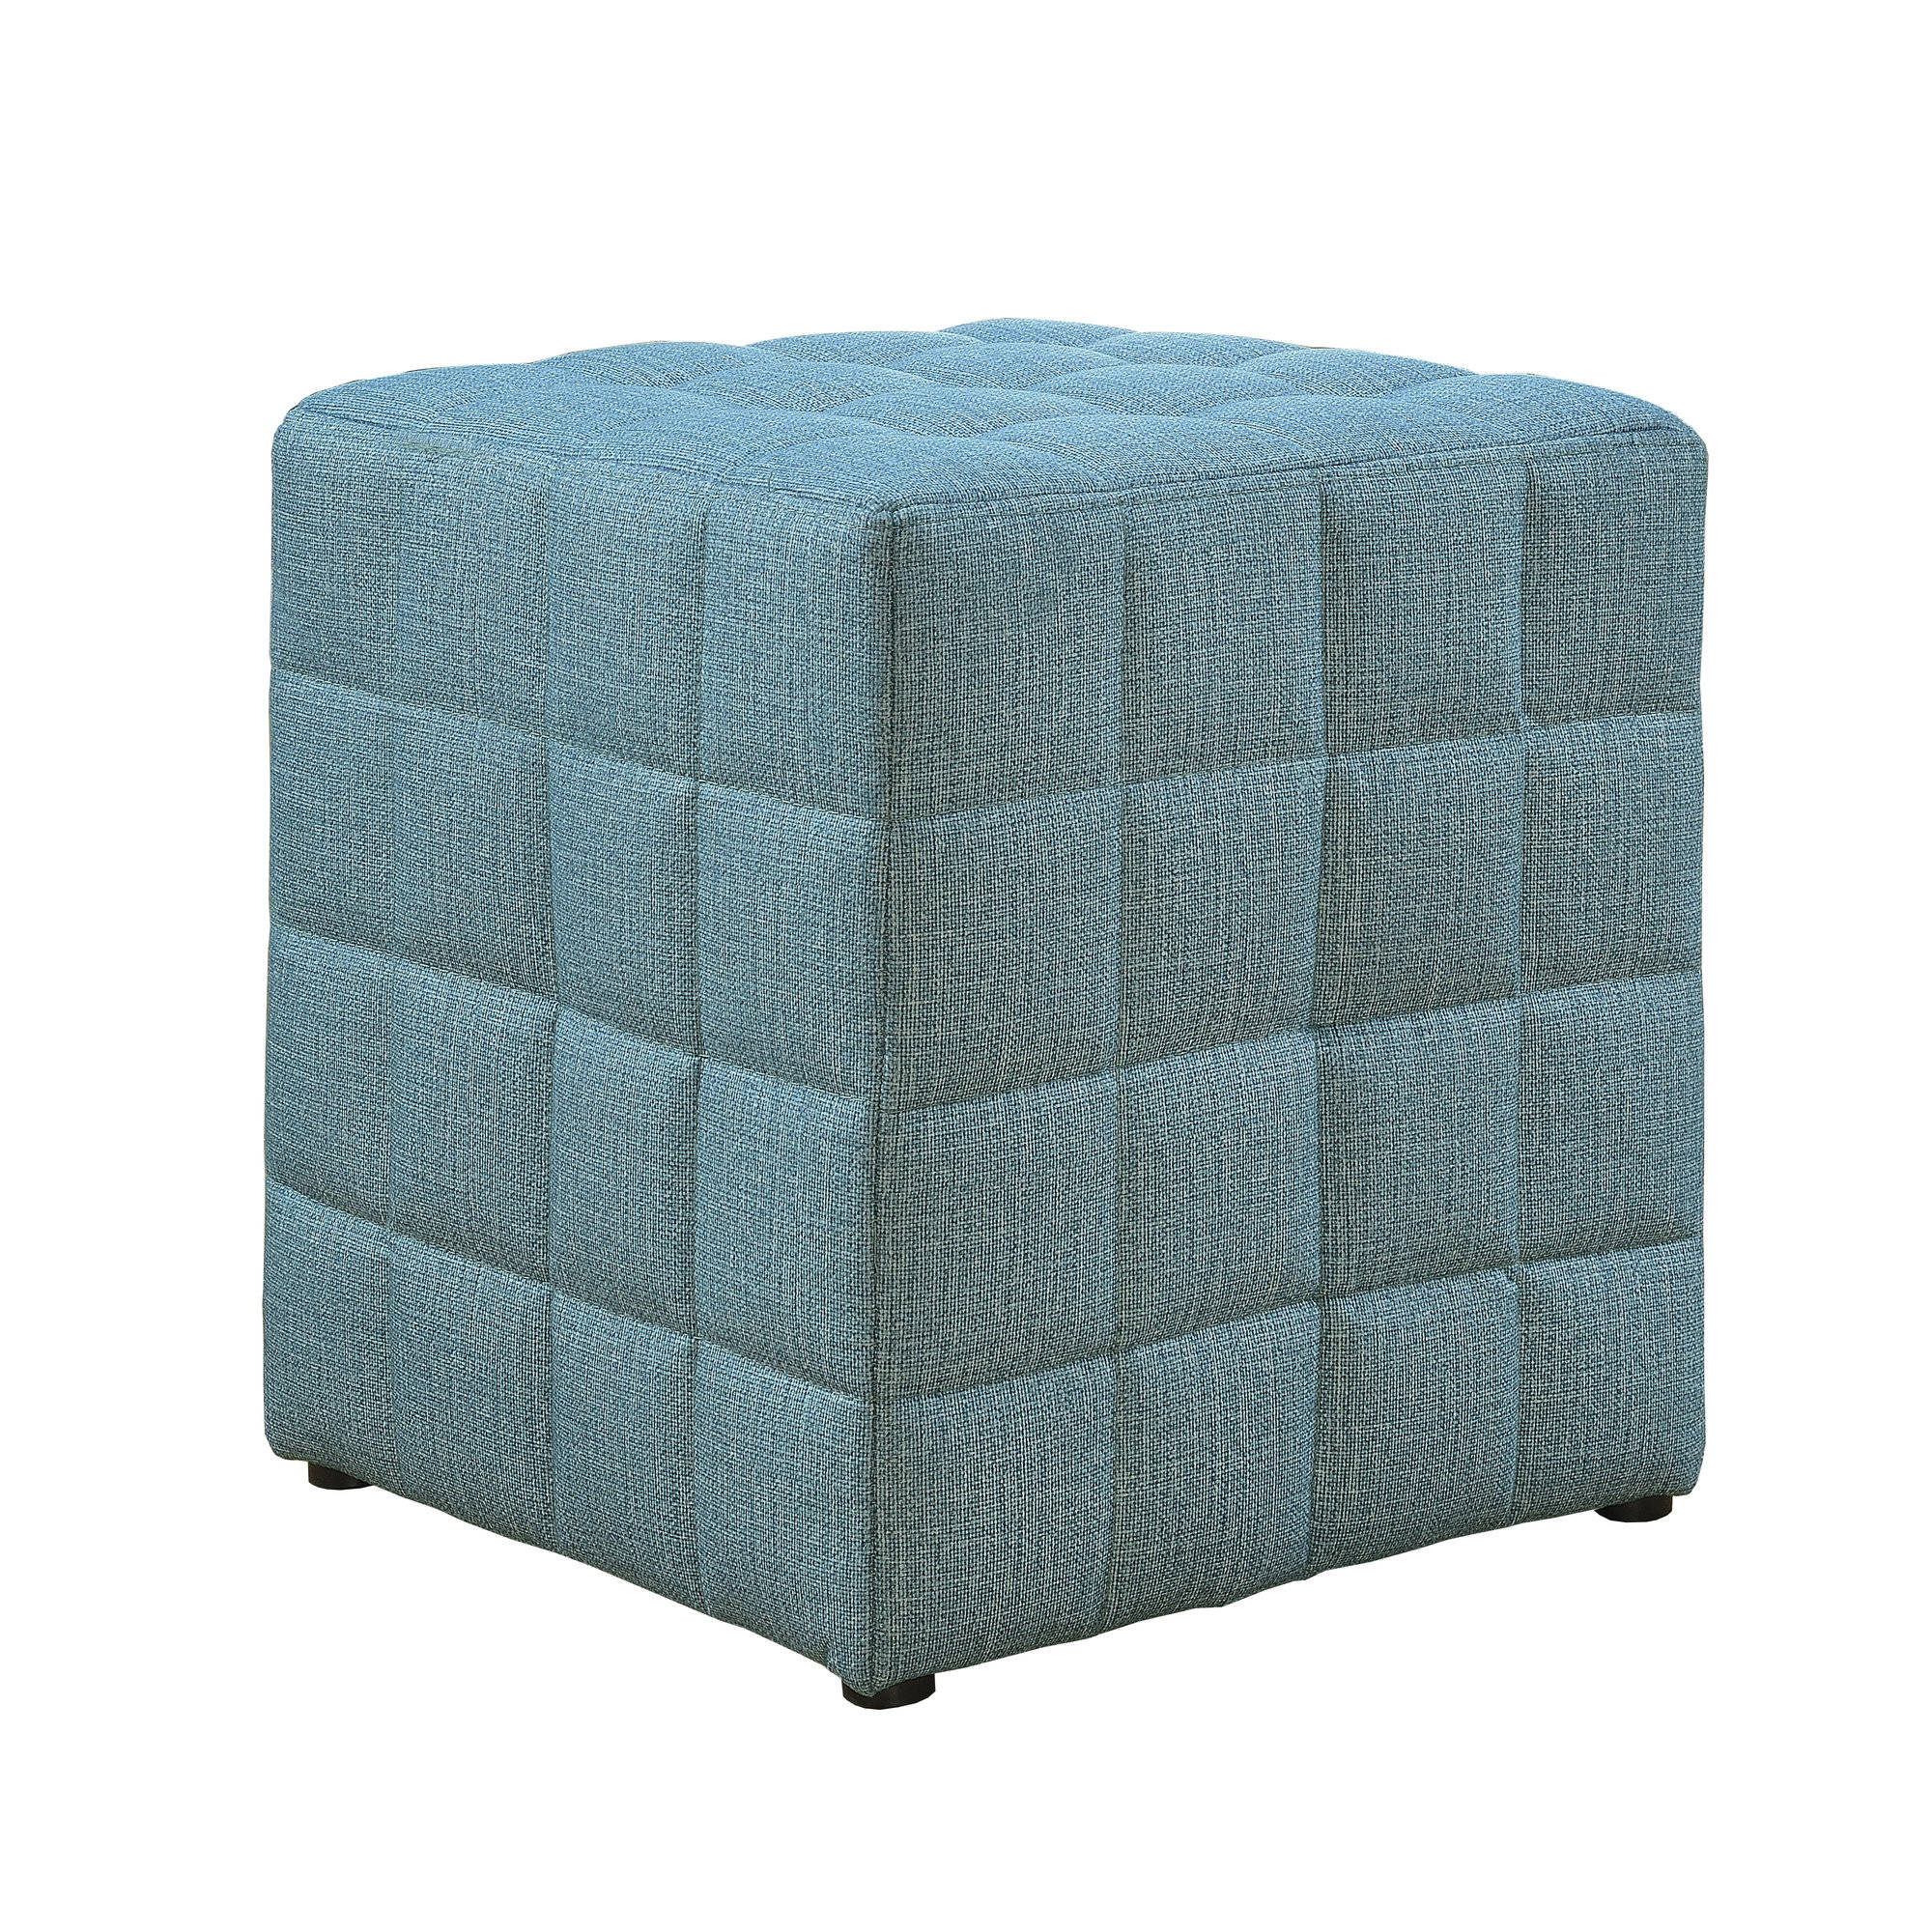 Monarch Specialties Light Blue Fabric Ottoman The Classy Home